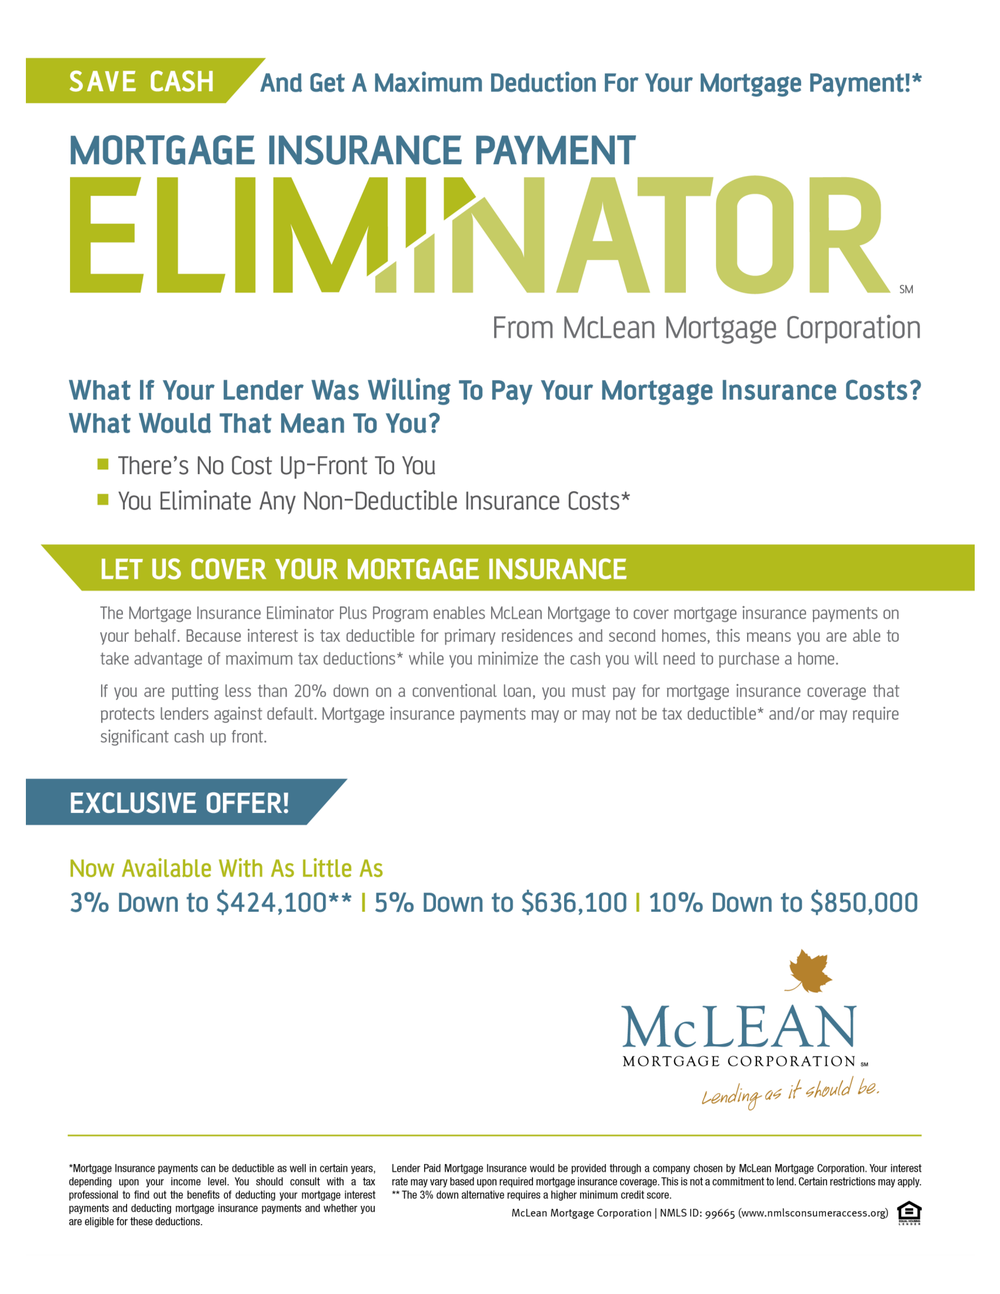 Mortgage Insurance Payment Eliminator_Slick_wExclusive Offer_2017.png